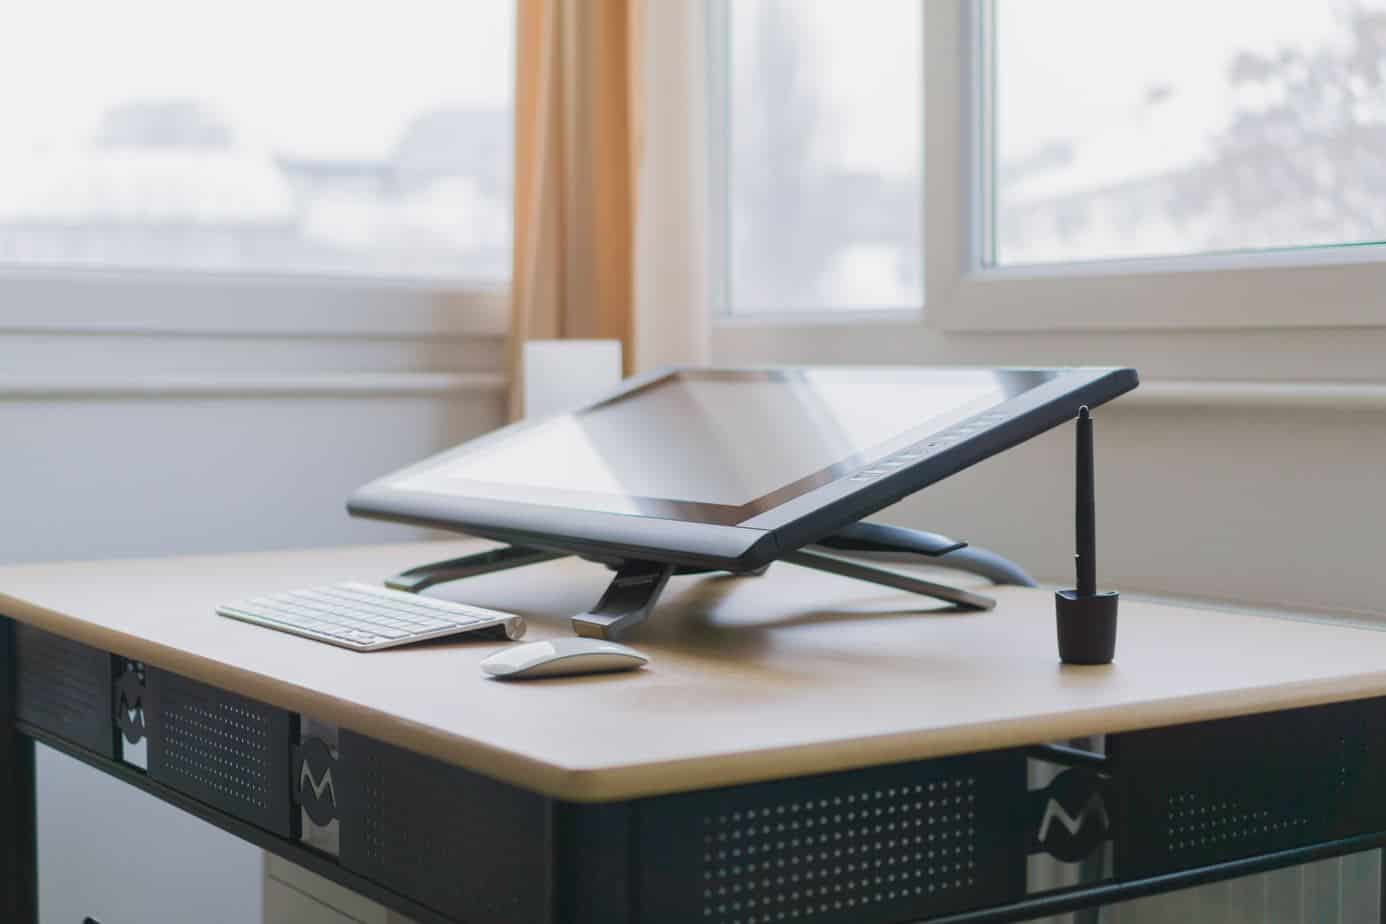 Design tables are great tools for some professionals, but not necessary for your to learn how to become a web designer.